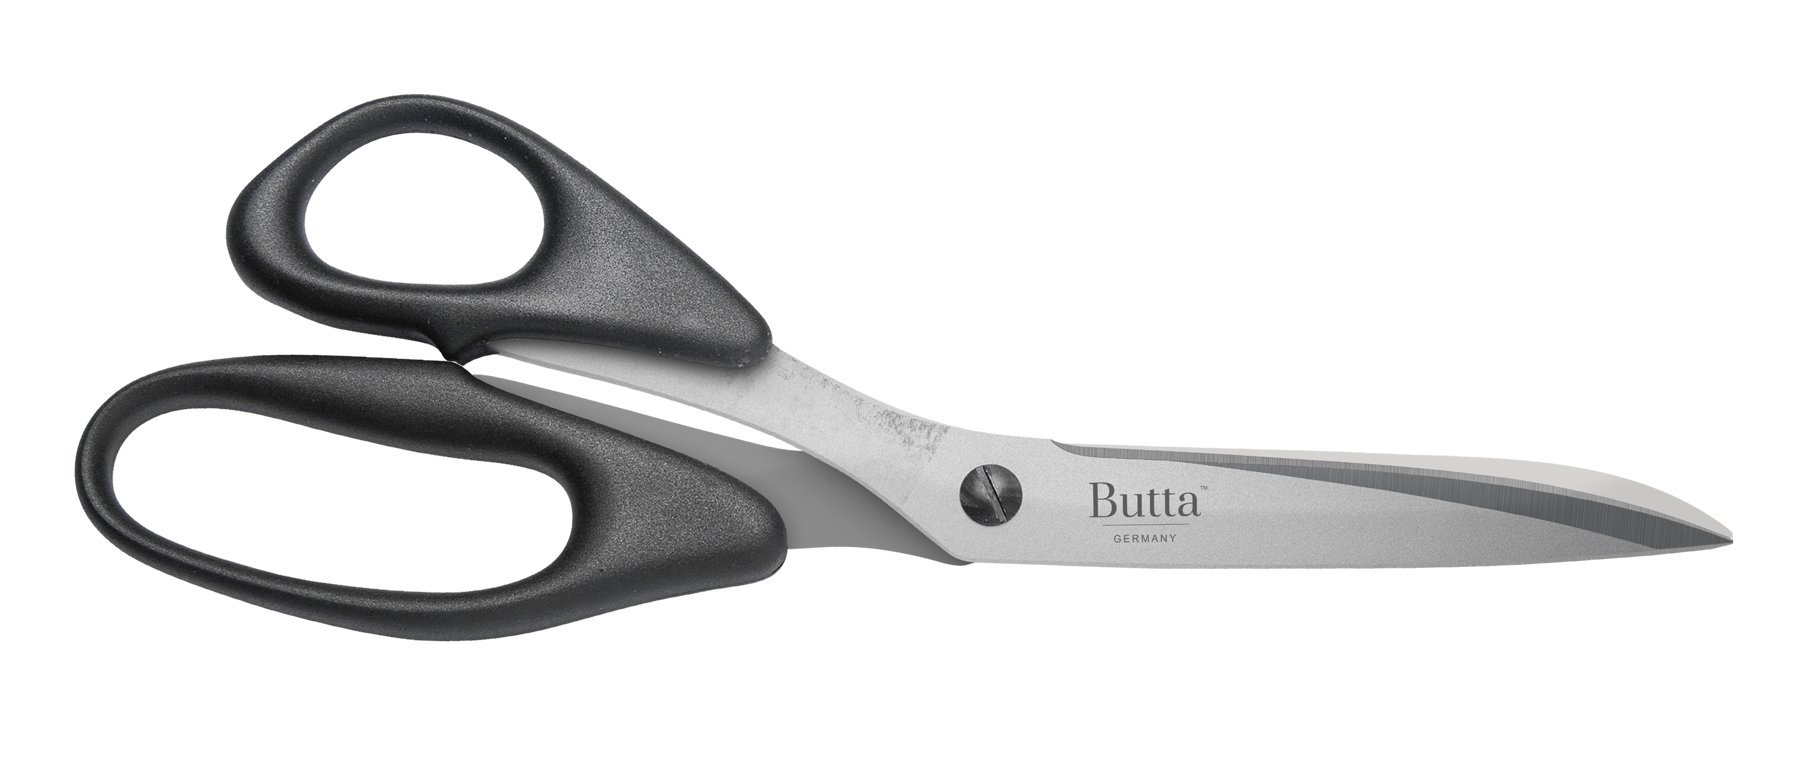 Butta, Handmade in Germany, 9-Inch Professional Tailor Shears